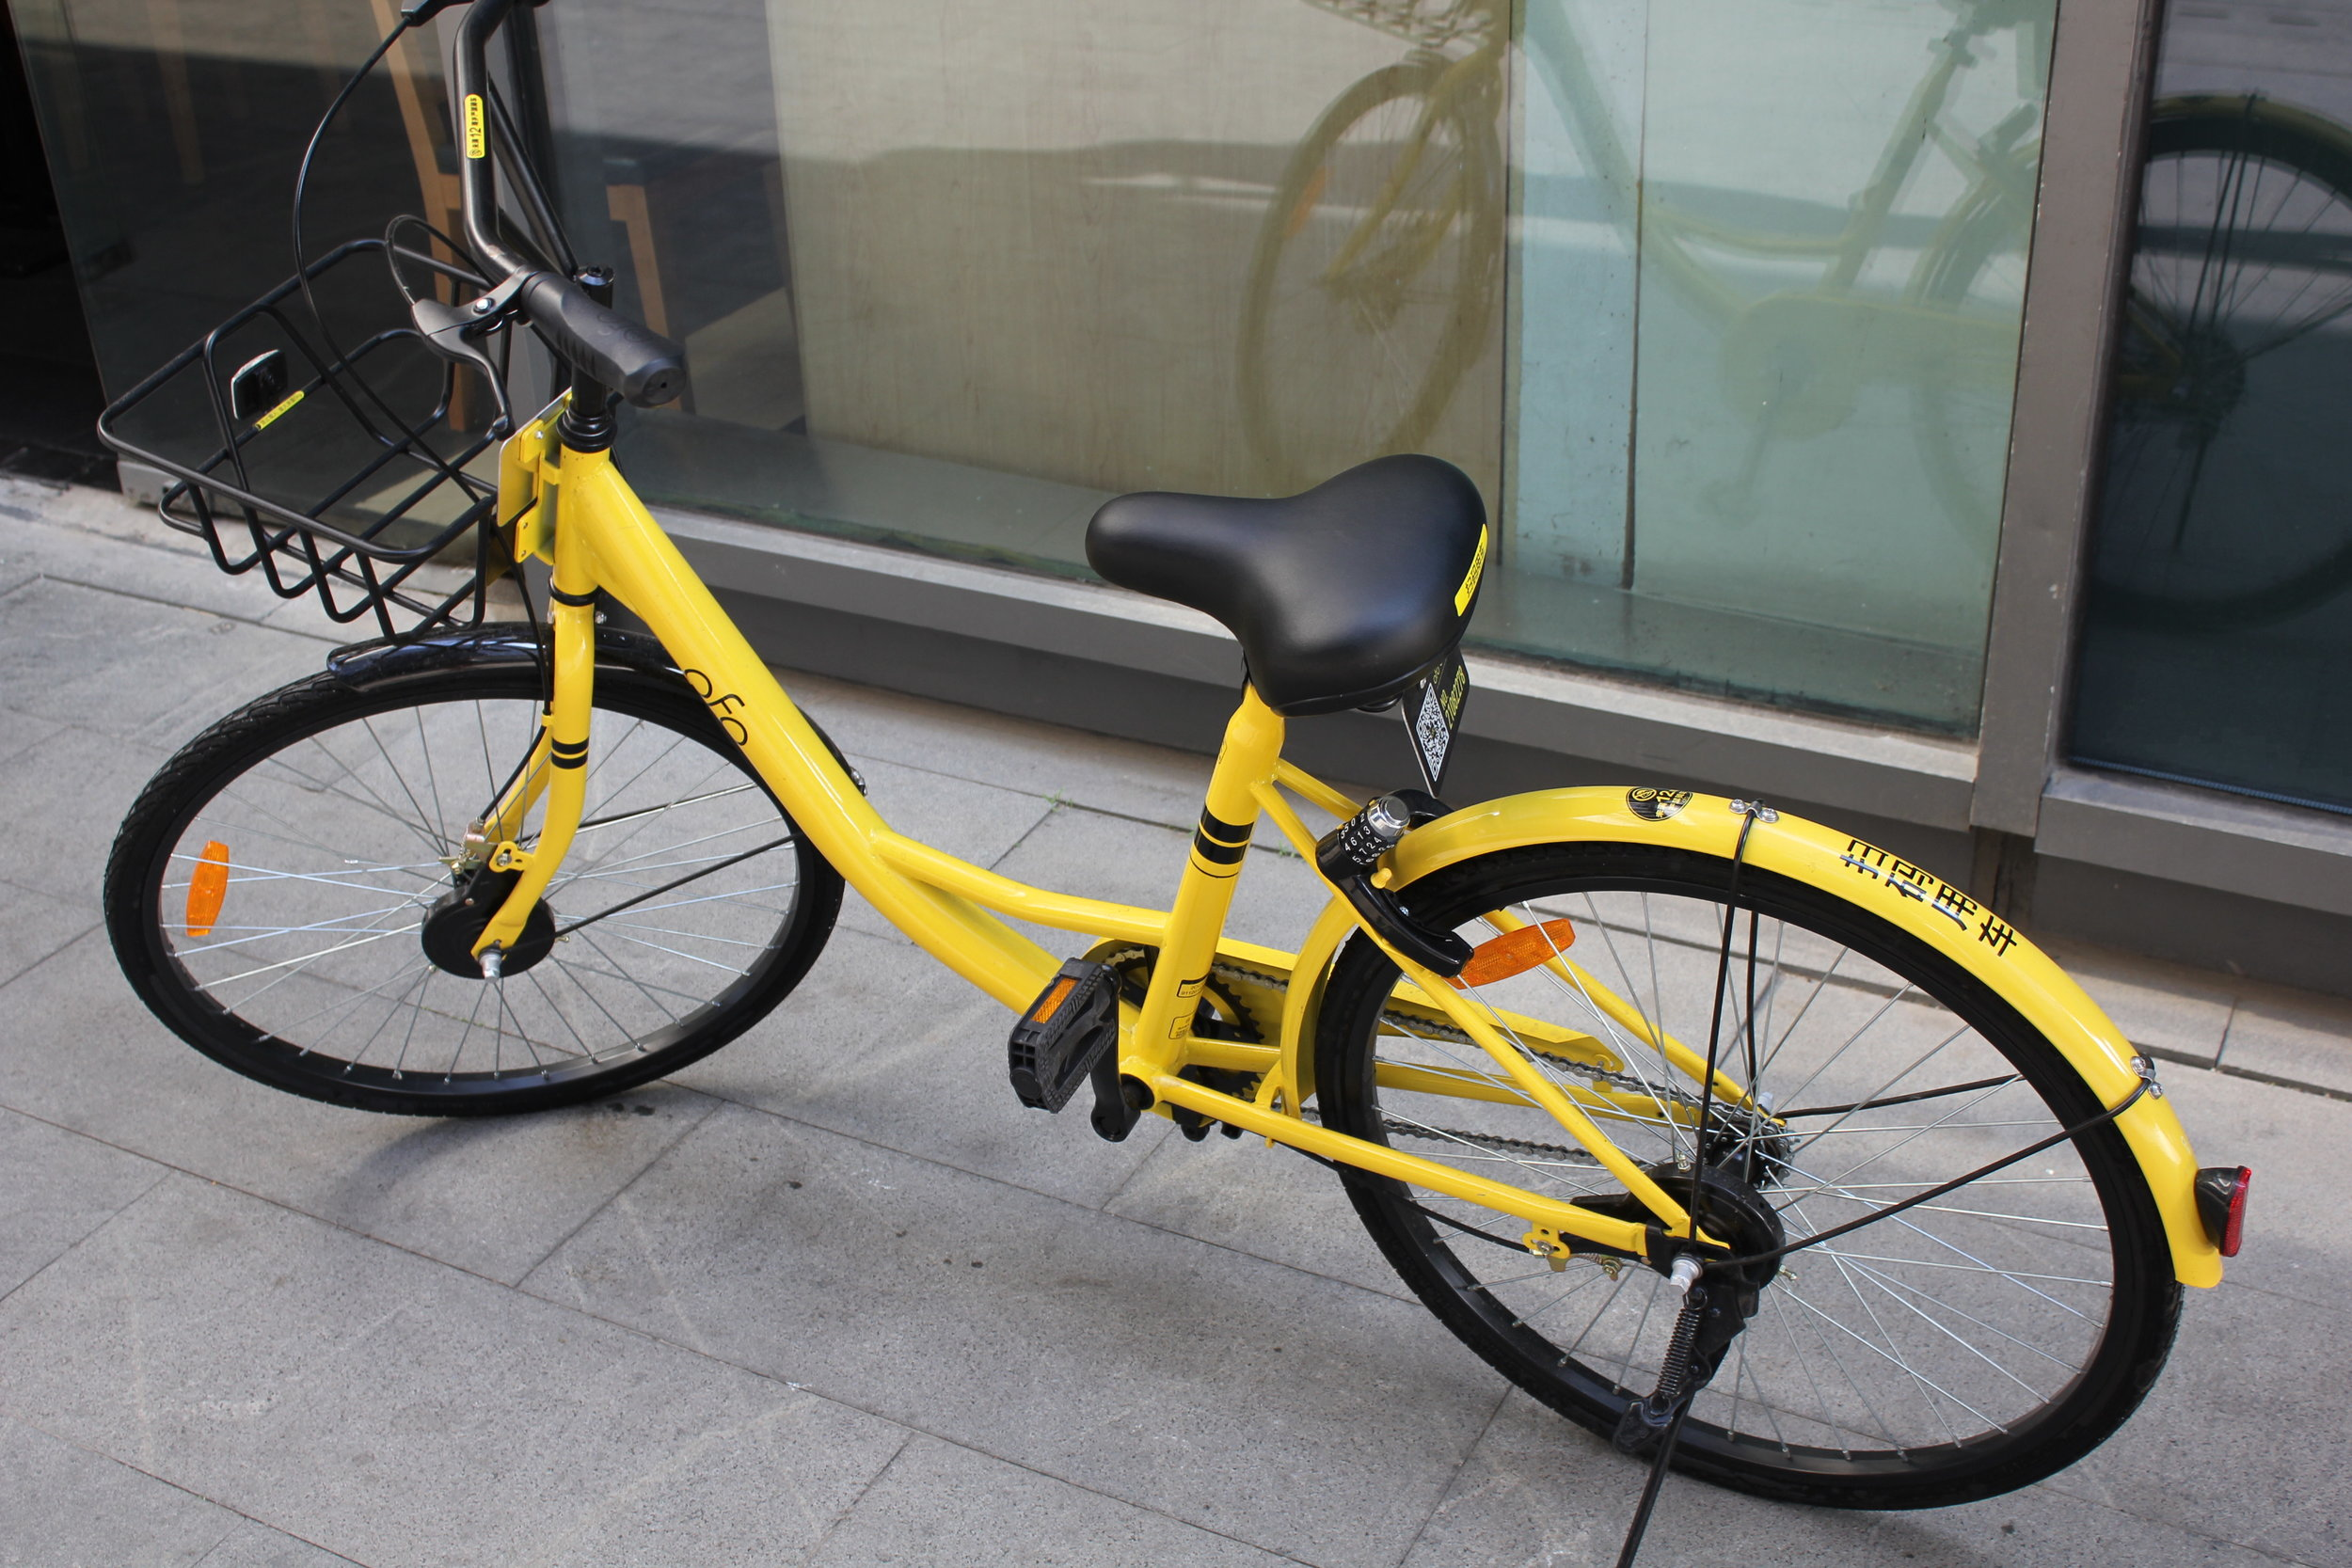 Parked Ofo bicycle, ready to be unlocked